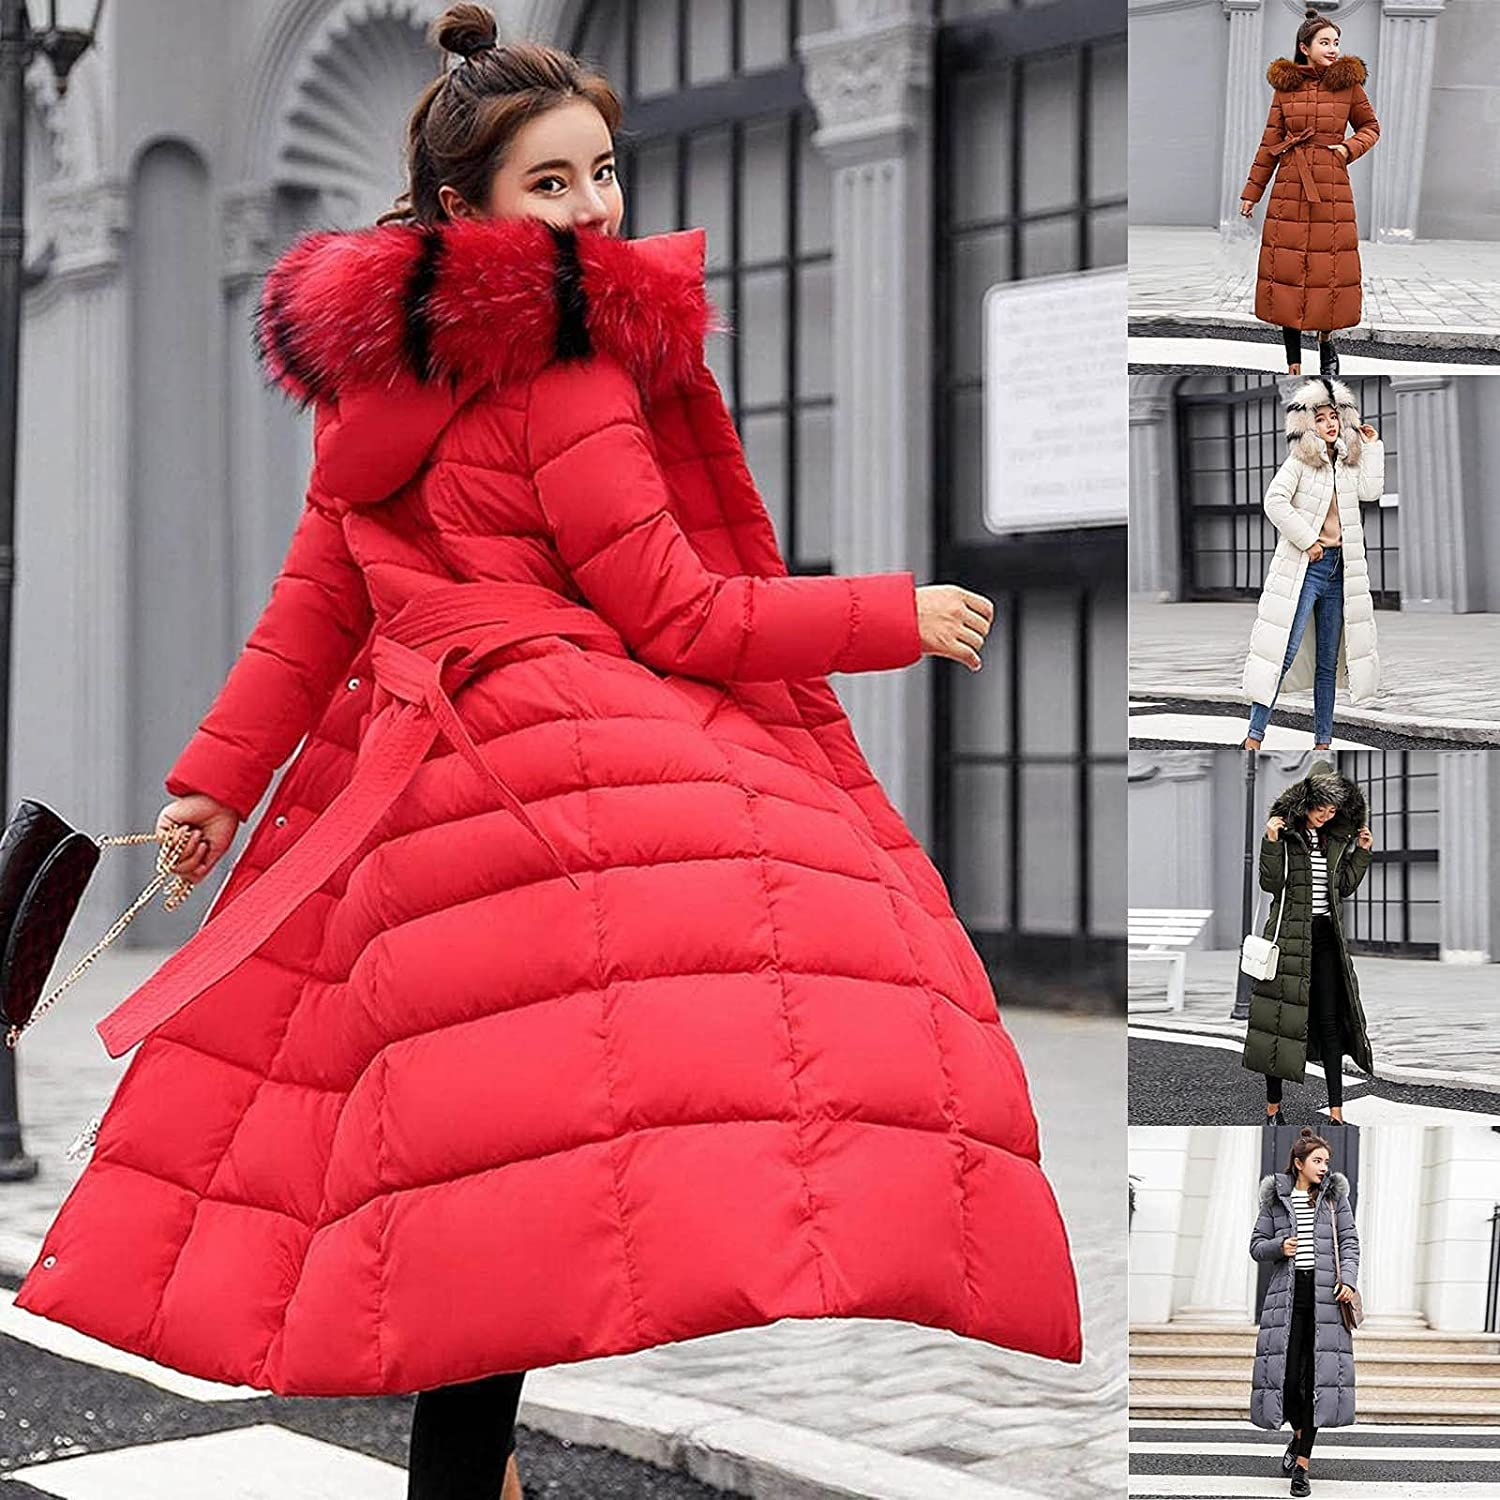 FIRERO Women's Pockets Hooded Down Coat Zipple Closure Solid Color Long Jacket with Fur Colla